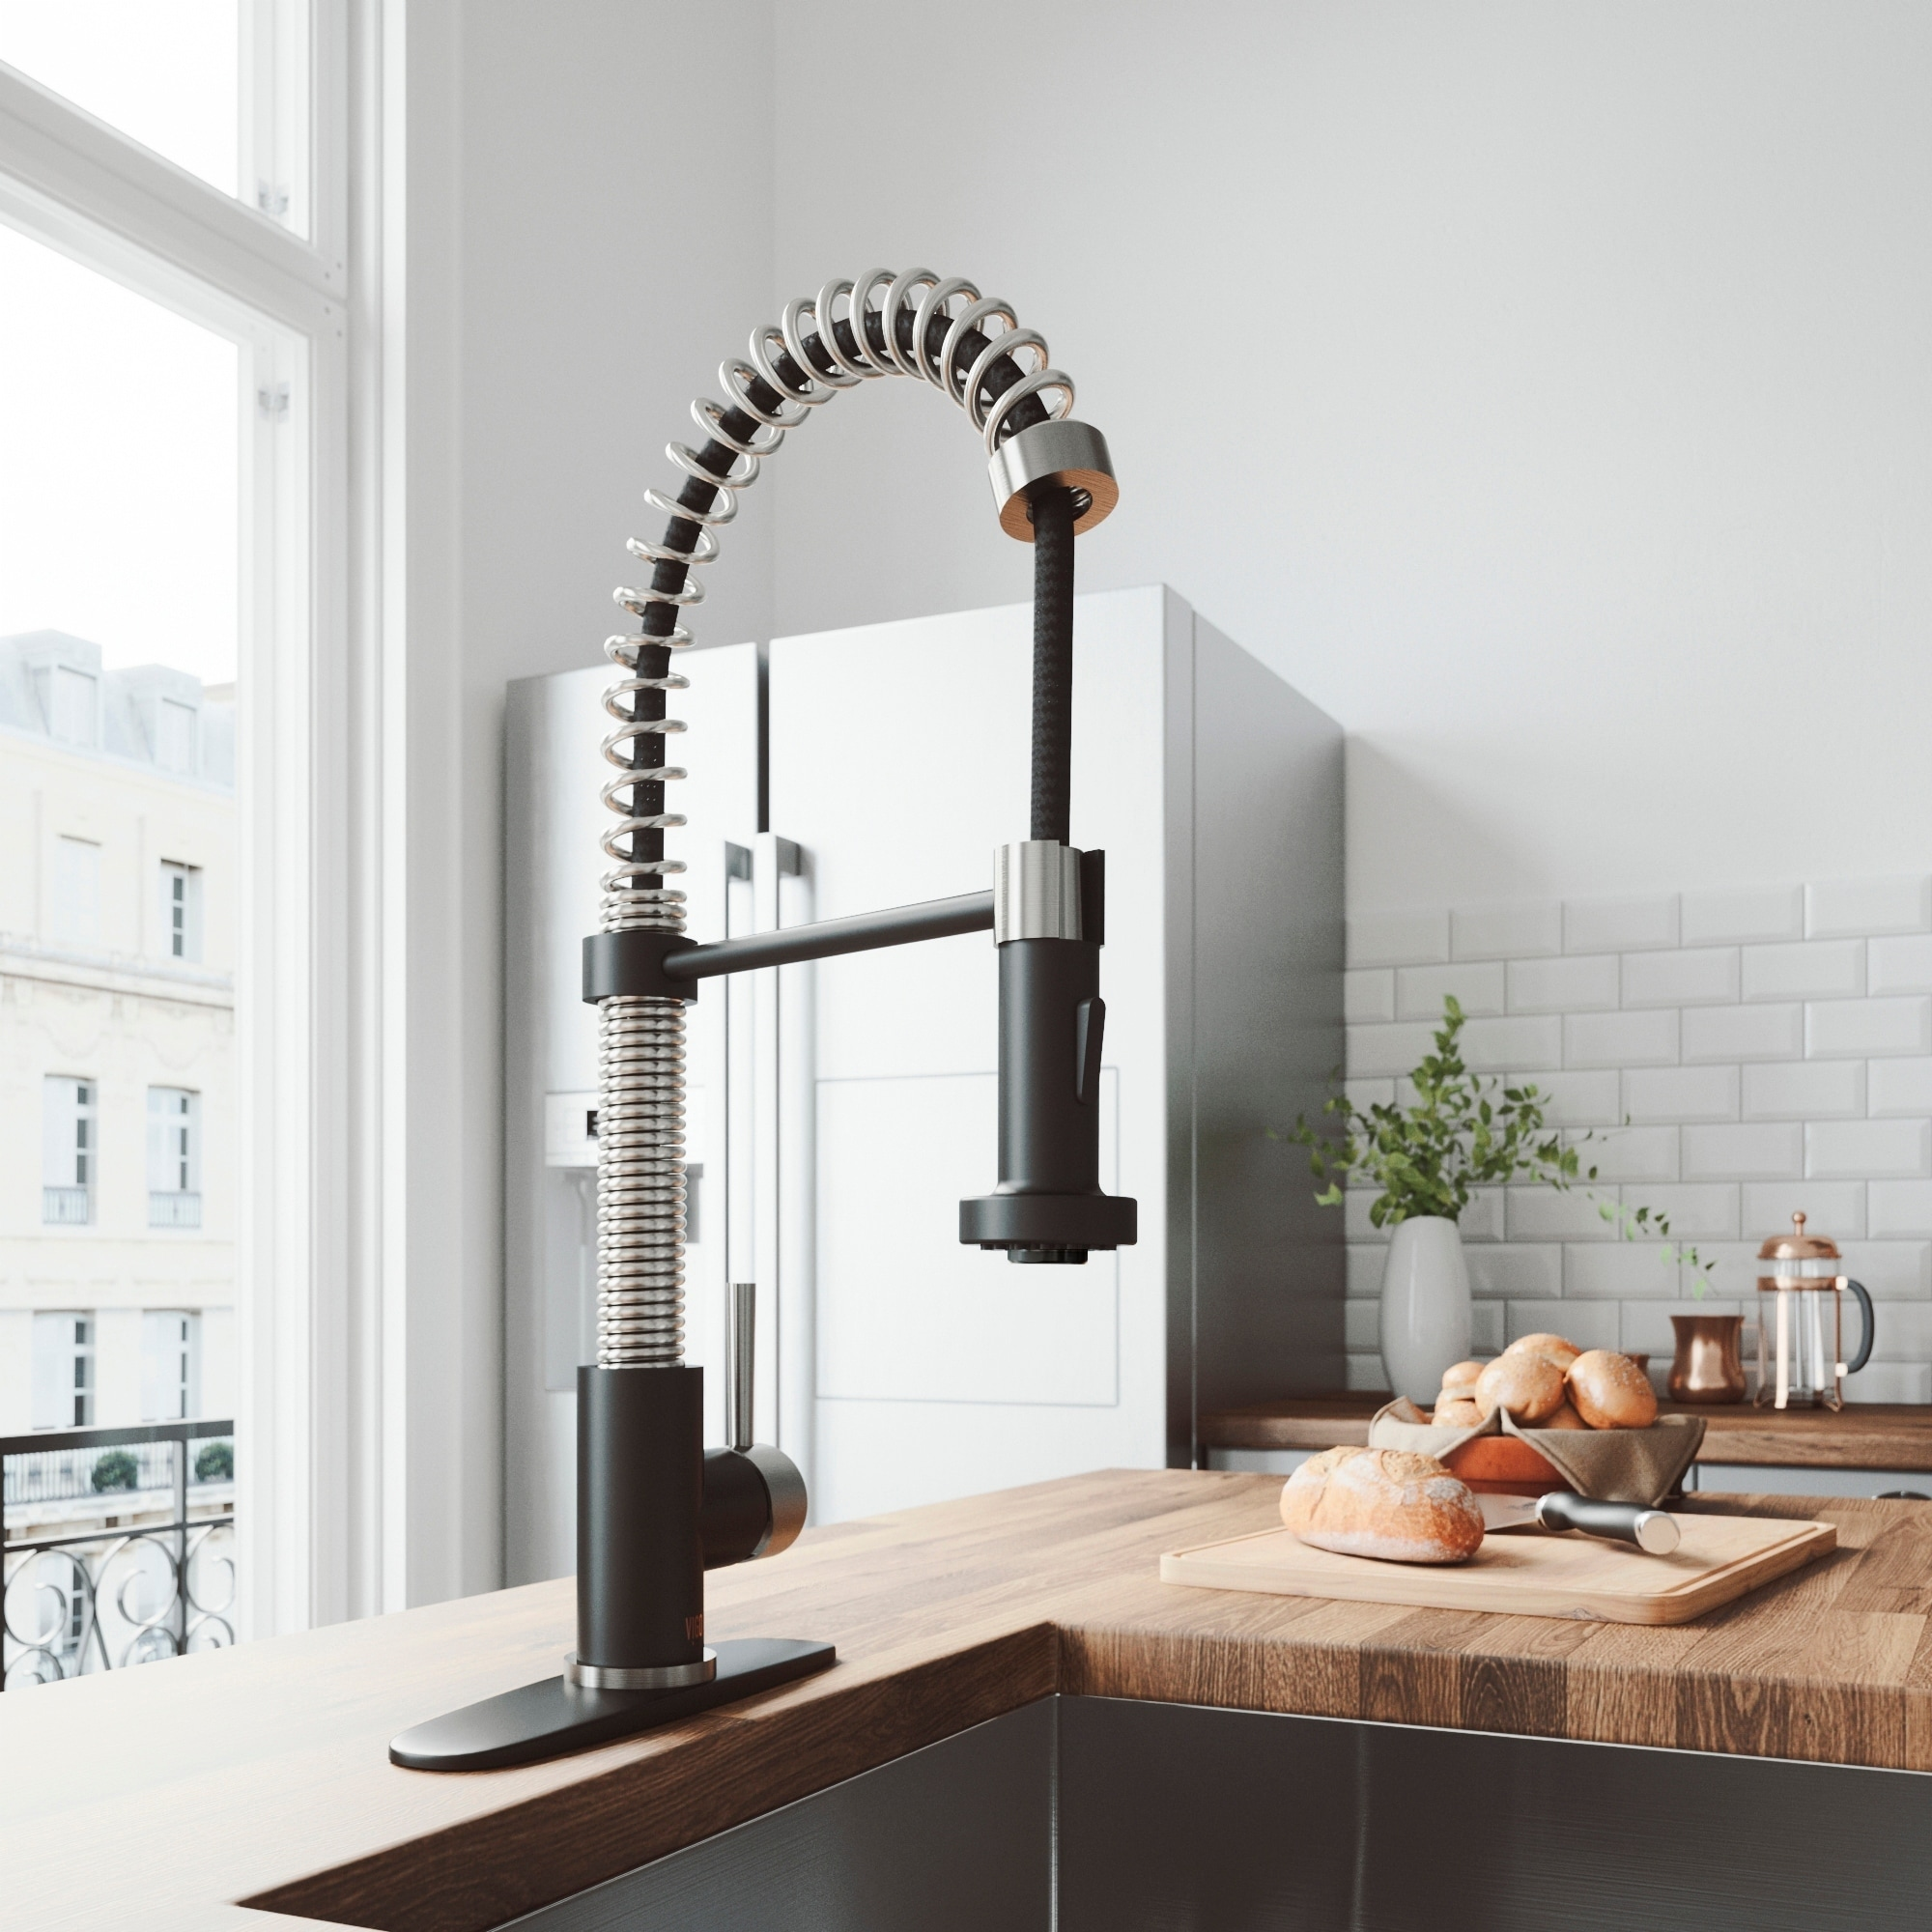 VIGO Edison Stainless Steel and Black Kitchen Faucet with Deck Plate